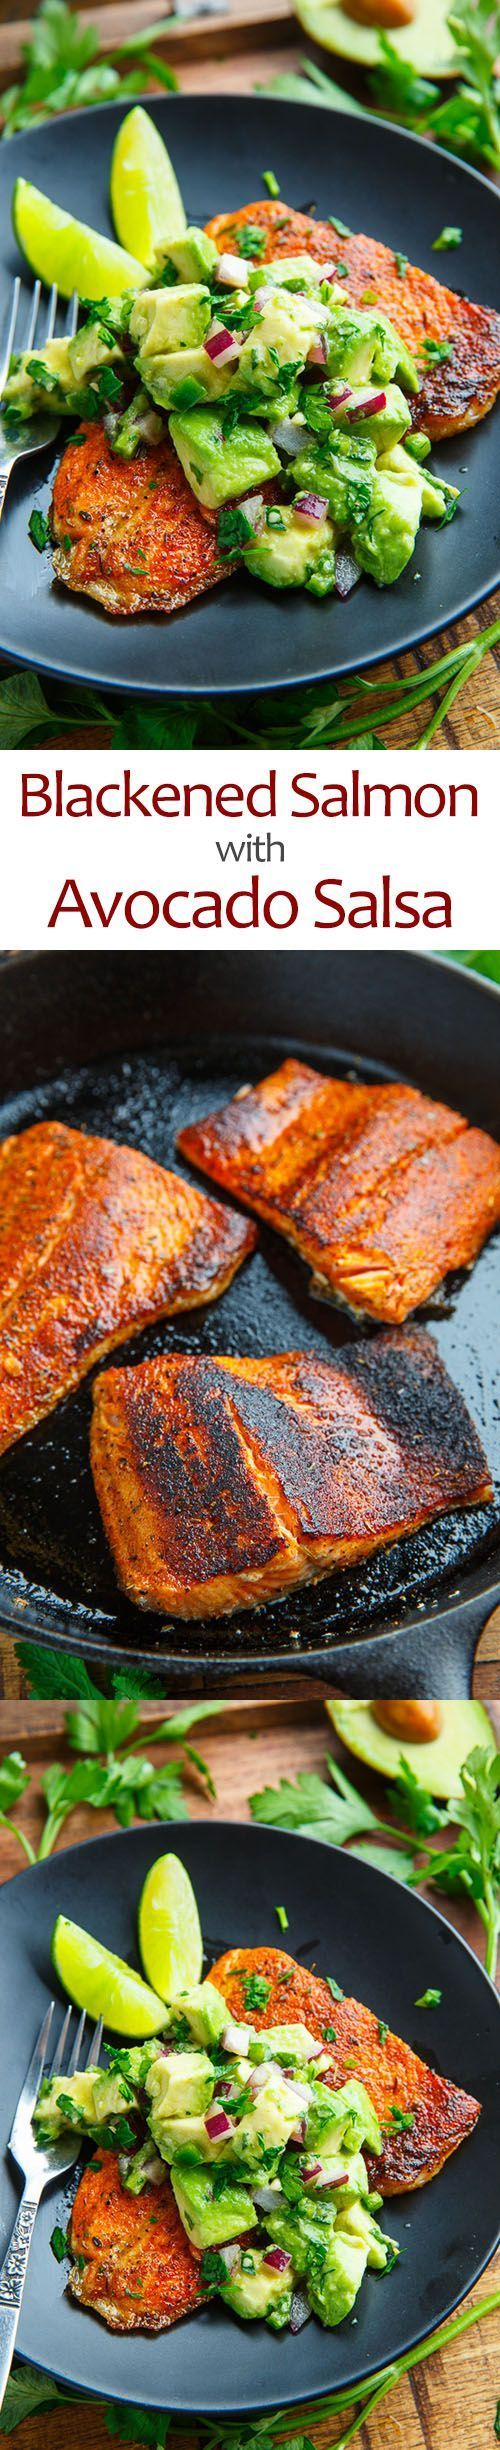 Blackened Salmon with Avocado Salsa (scheduled via http://www.tailwindapp.com?utm_source=pinterest&utm_medium=twpin)